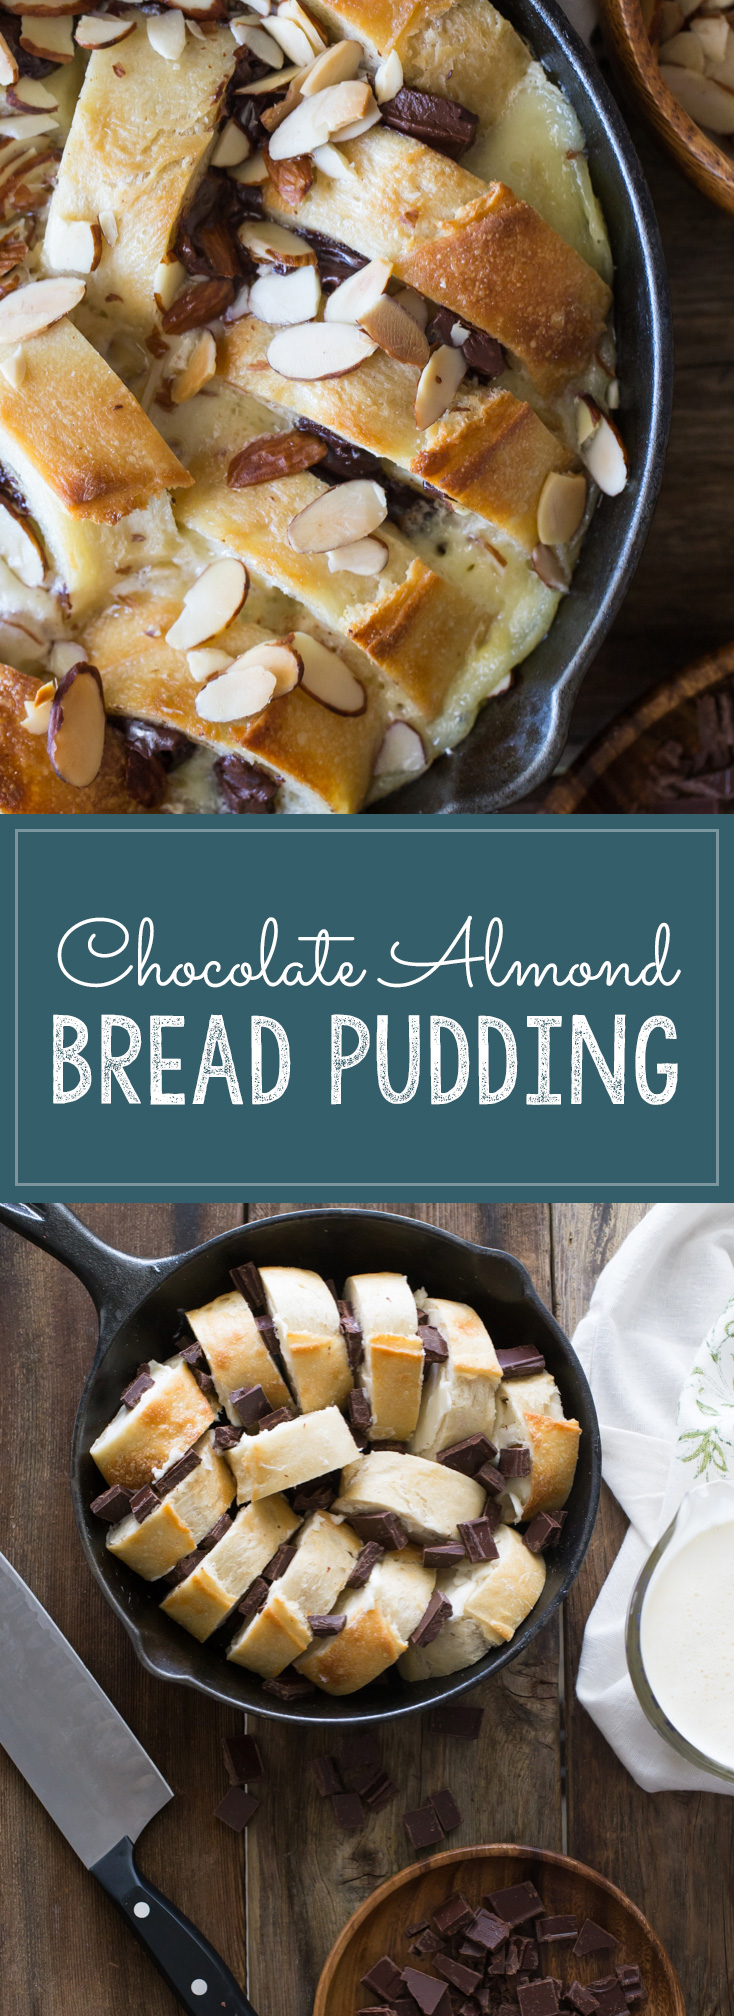 Chocolate Almond Bread Pudding